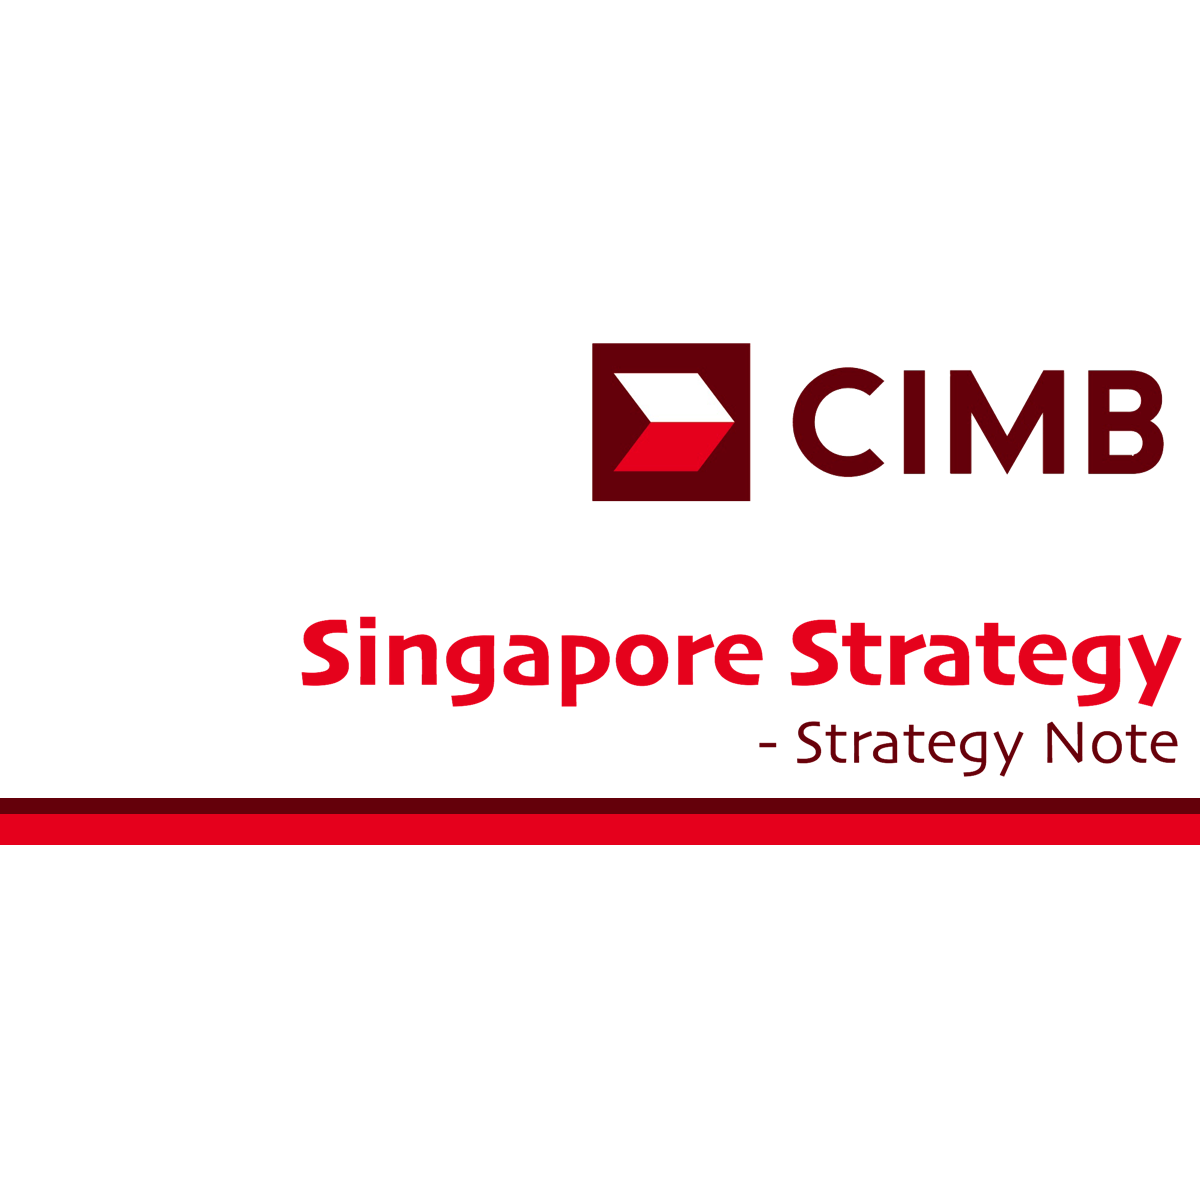 Singapore Strategy - CIMB Research 2018-03-05: Earnings Bubbling